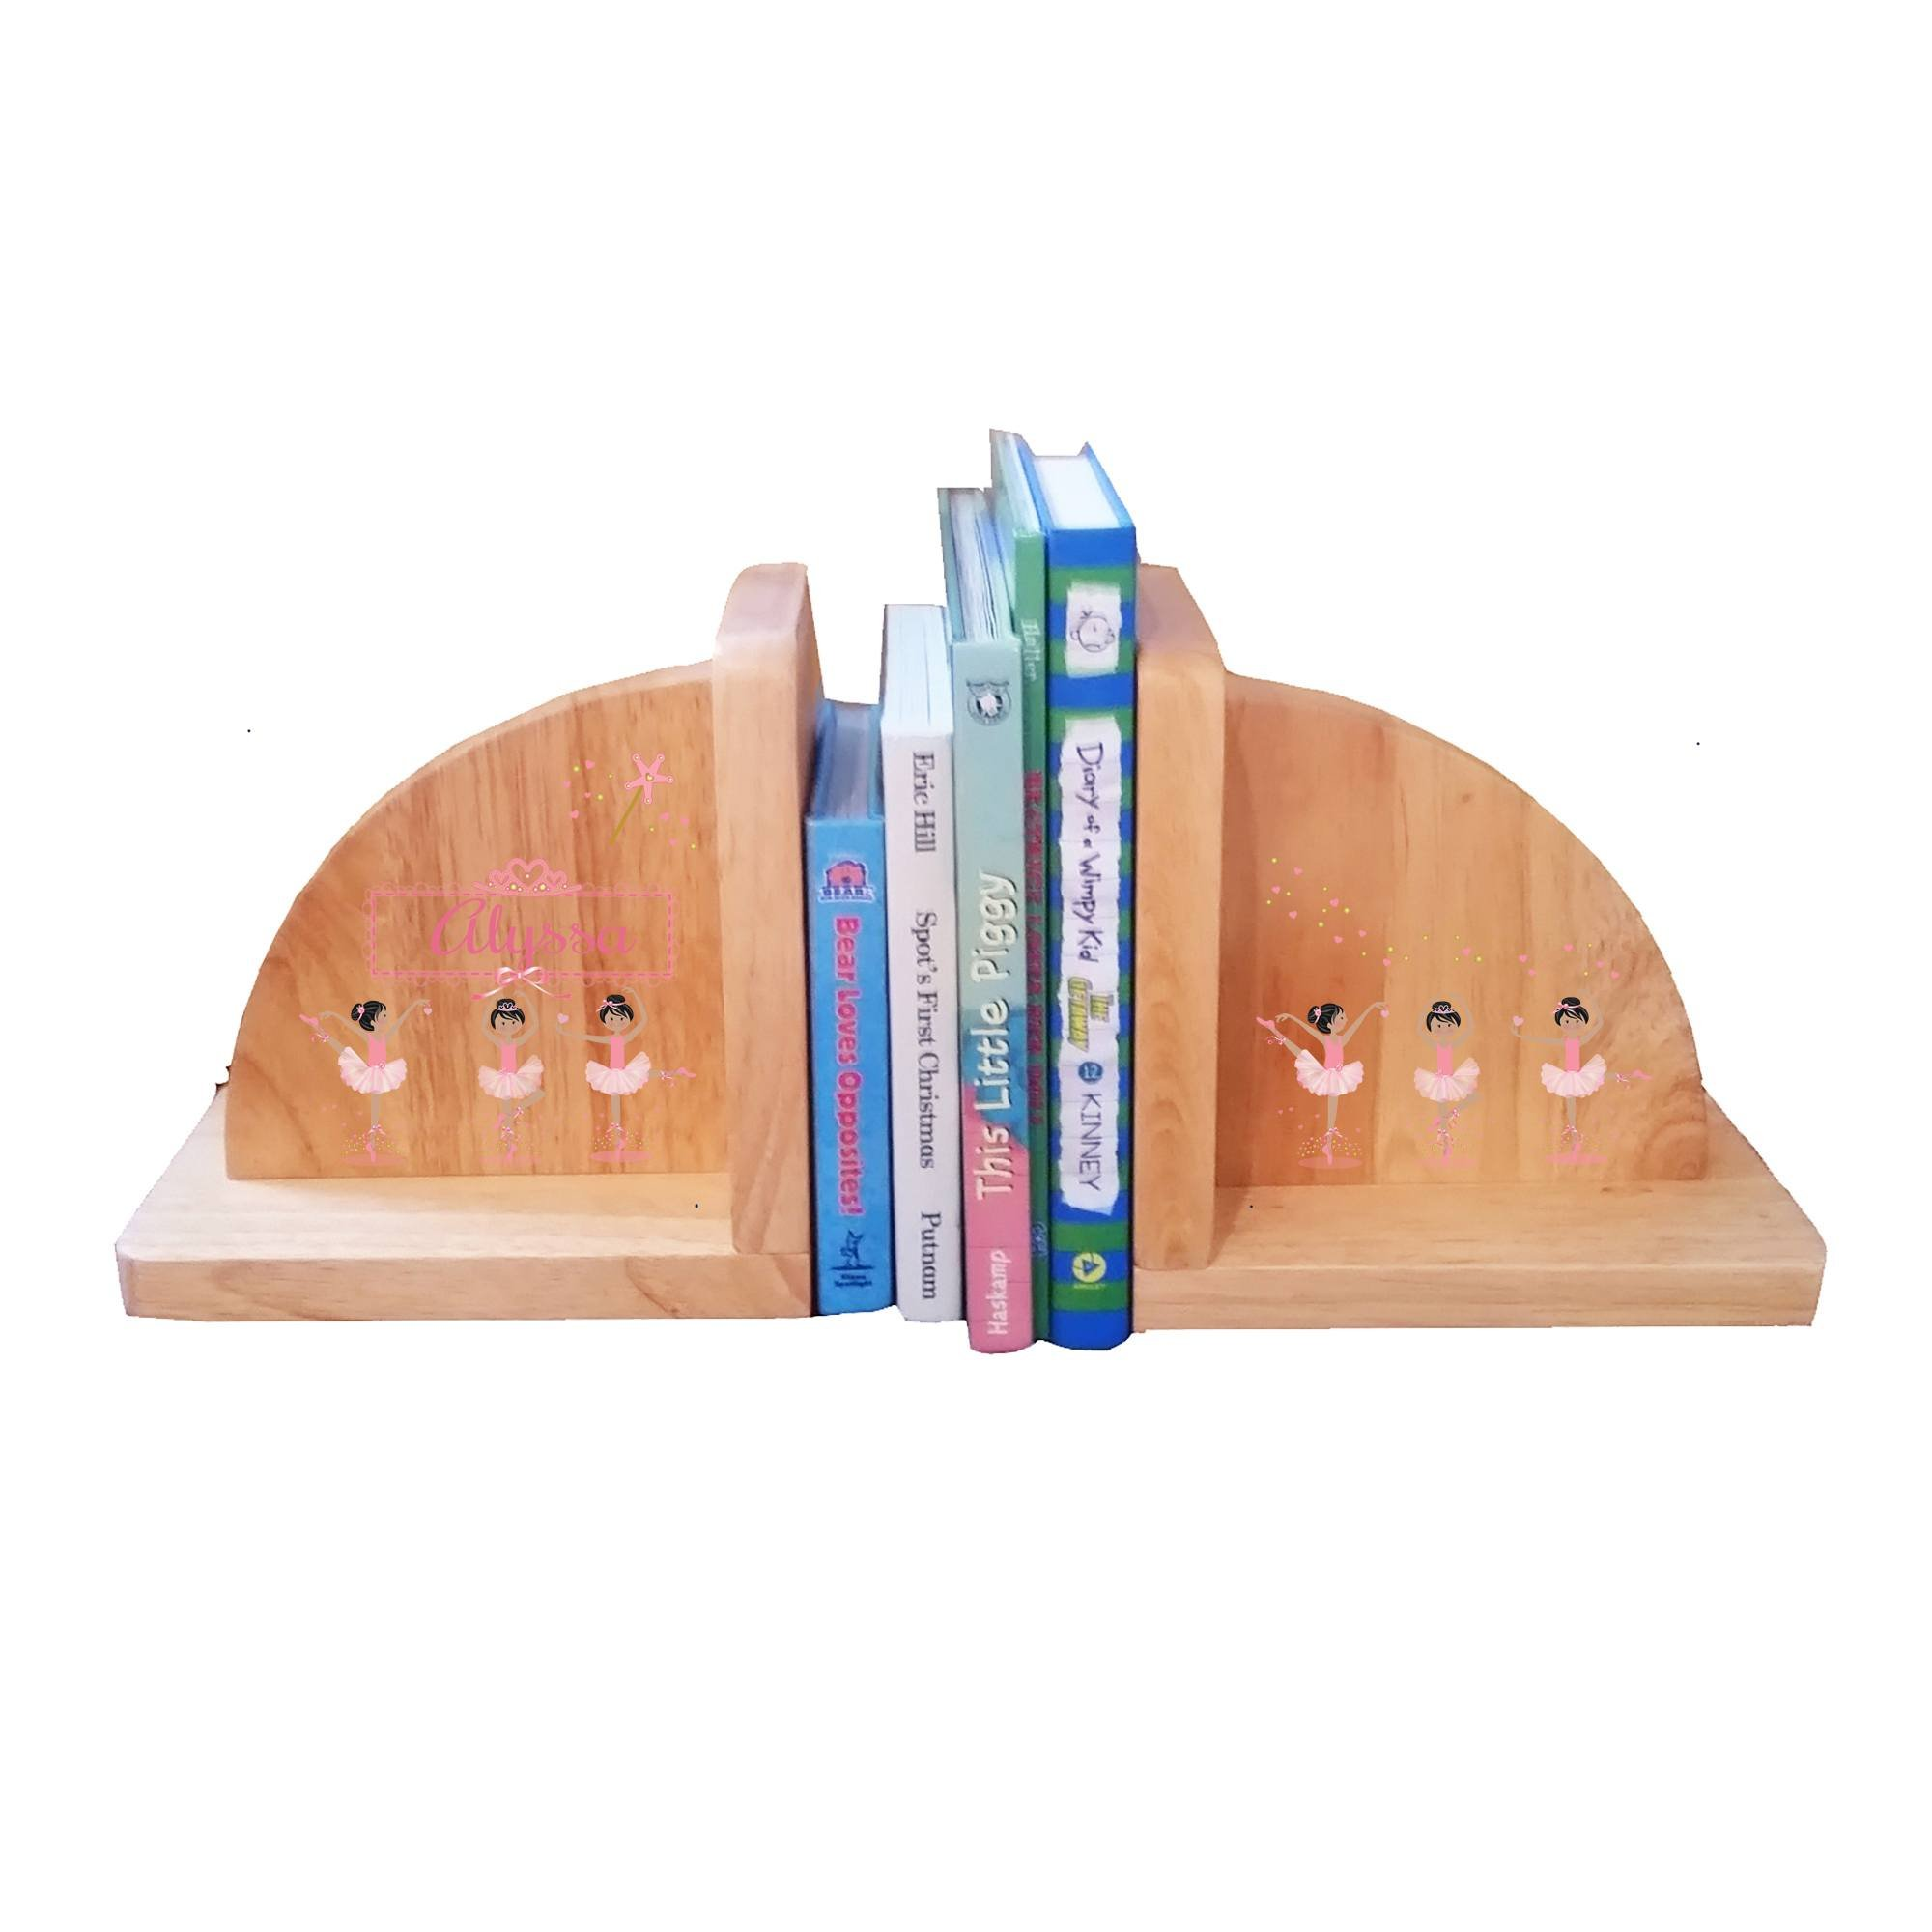 Personalized Ballerina Black Hair Natural Wooden Bookends